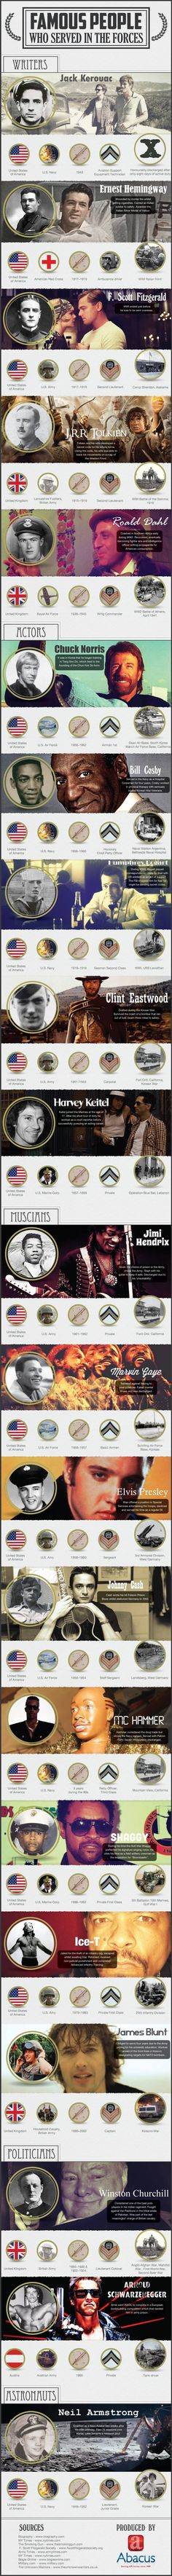 Famous people that served in the Armed Forces.. from Ernest Hemingway, Bill Cosby, Elvis Presley, Winston Churchill to Arnold Schwarzenegger and Neil Armstrong.